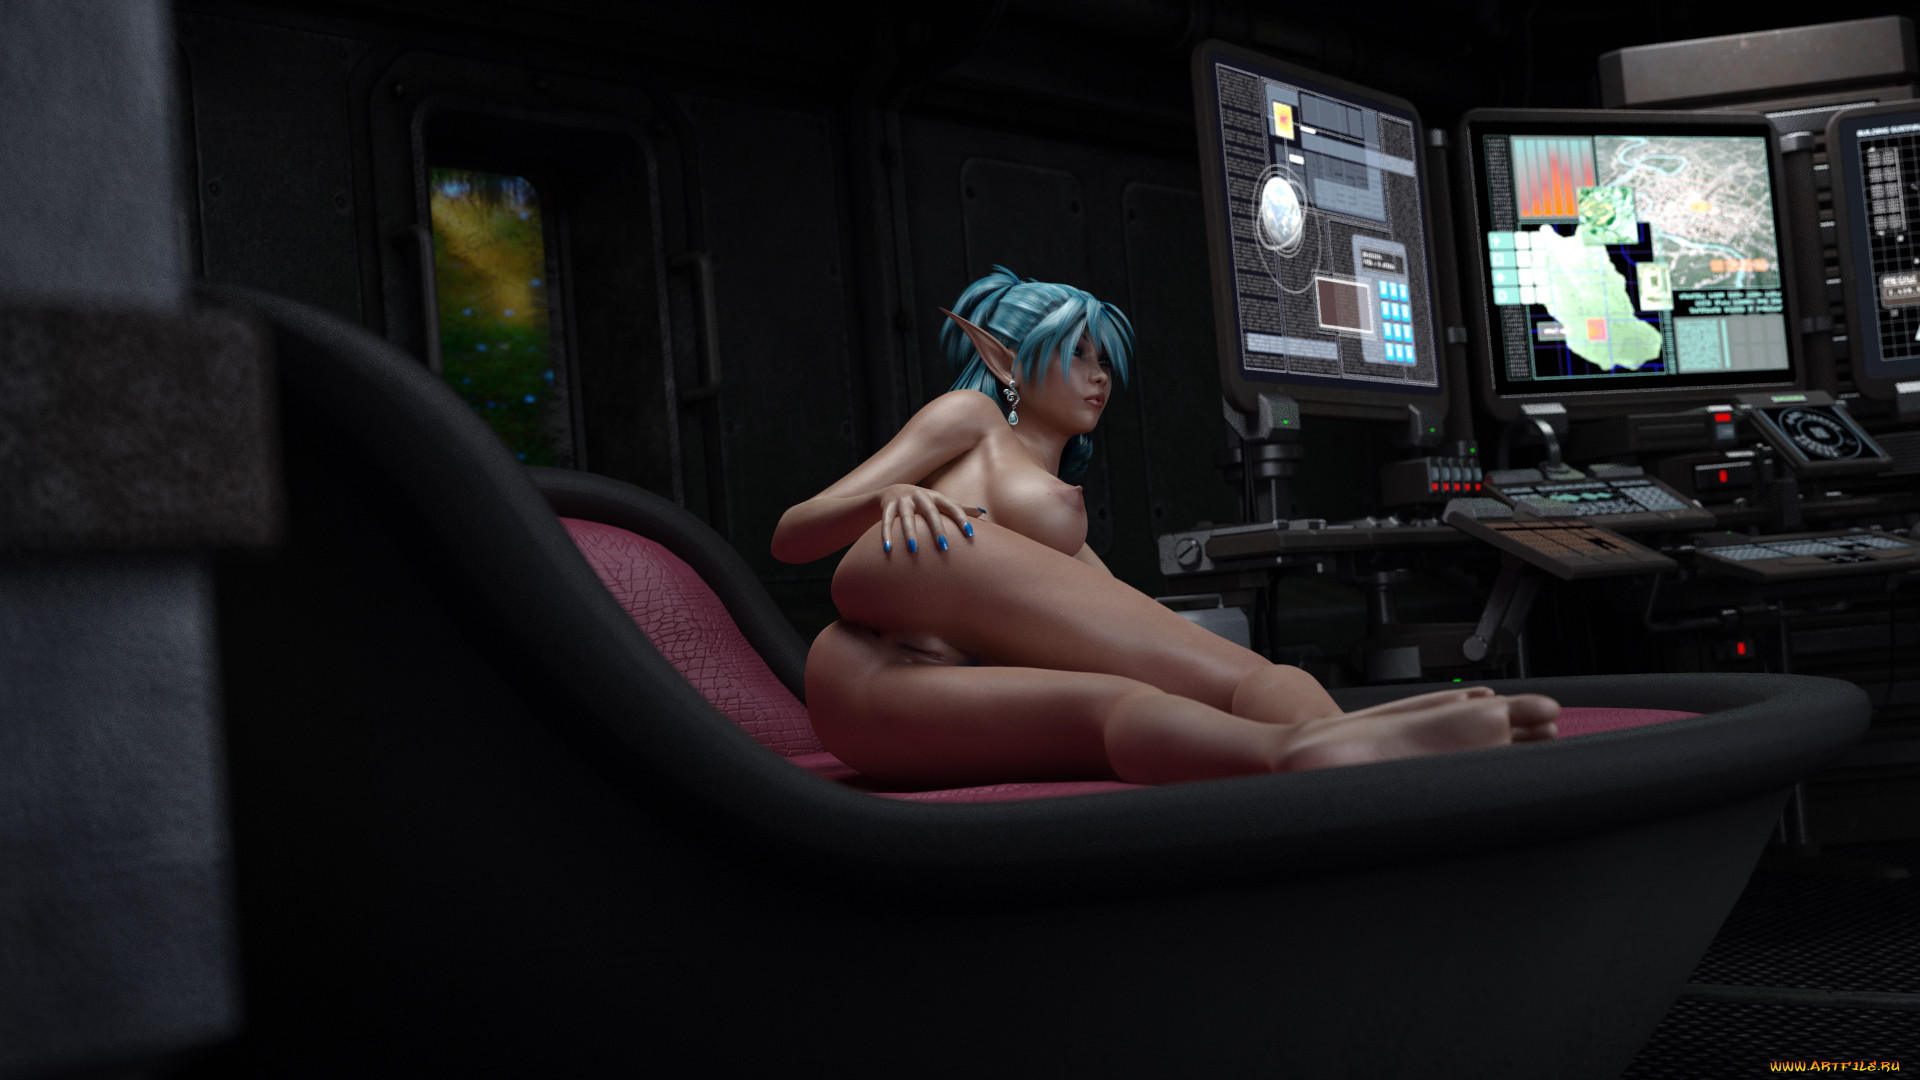 3d РѕСЂРєnaked erotic nude picture